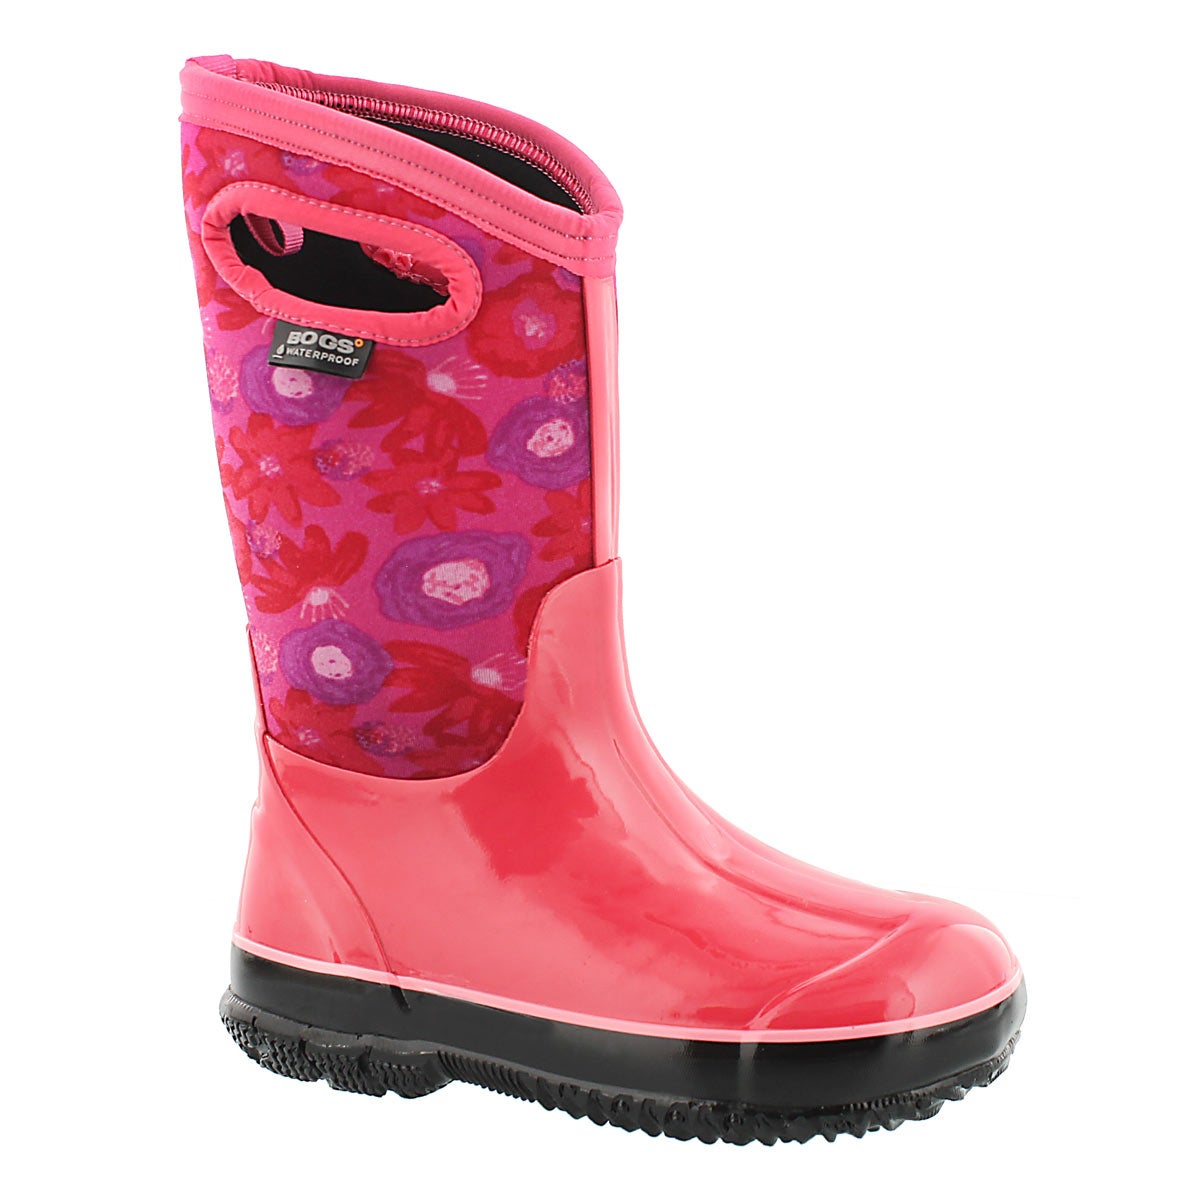 Girls' CLASSIC WATERCOLOR magnta wtpf boots